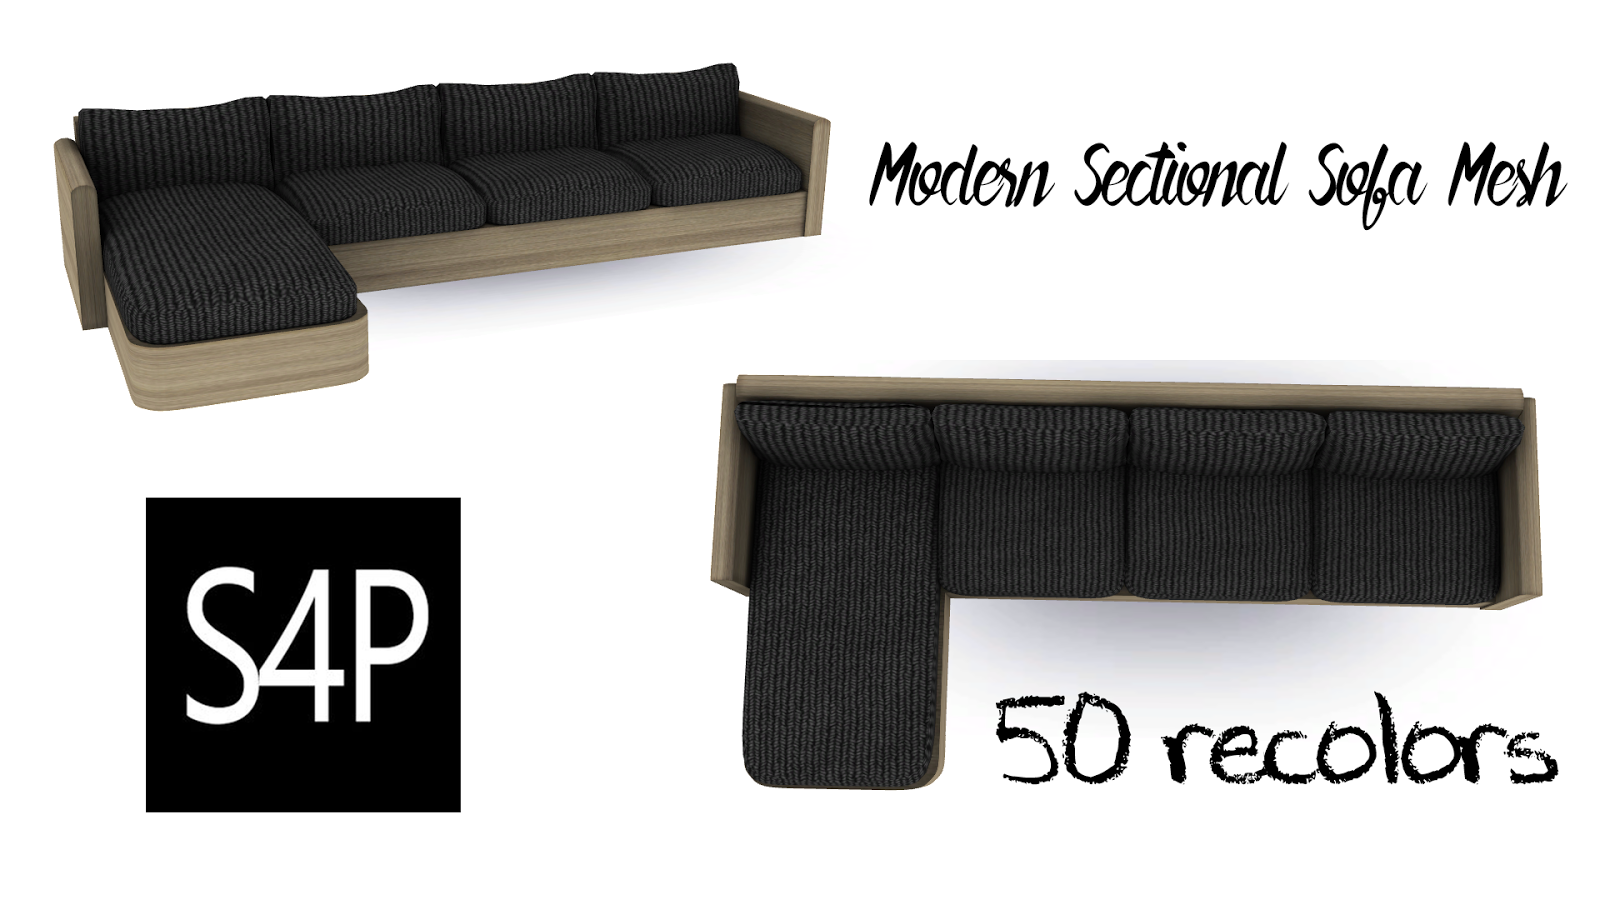 Download Sims 4 Pose Modern Sectional Sofa Mesh Seating